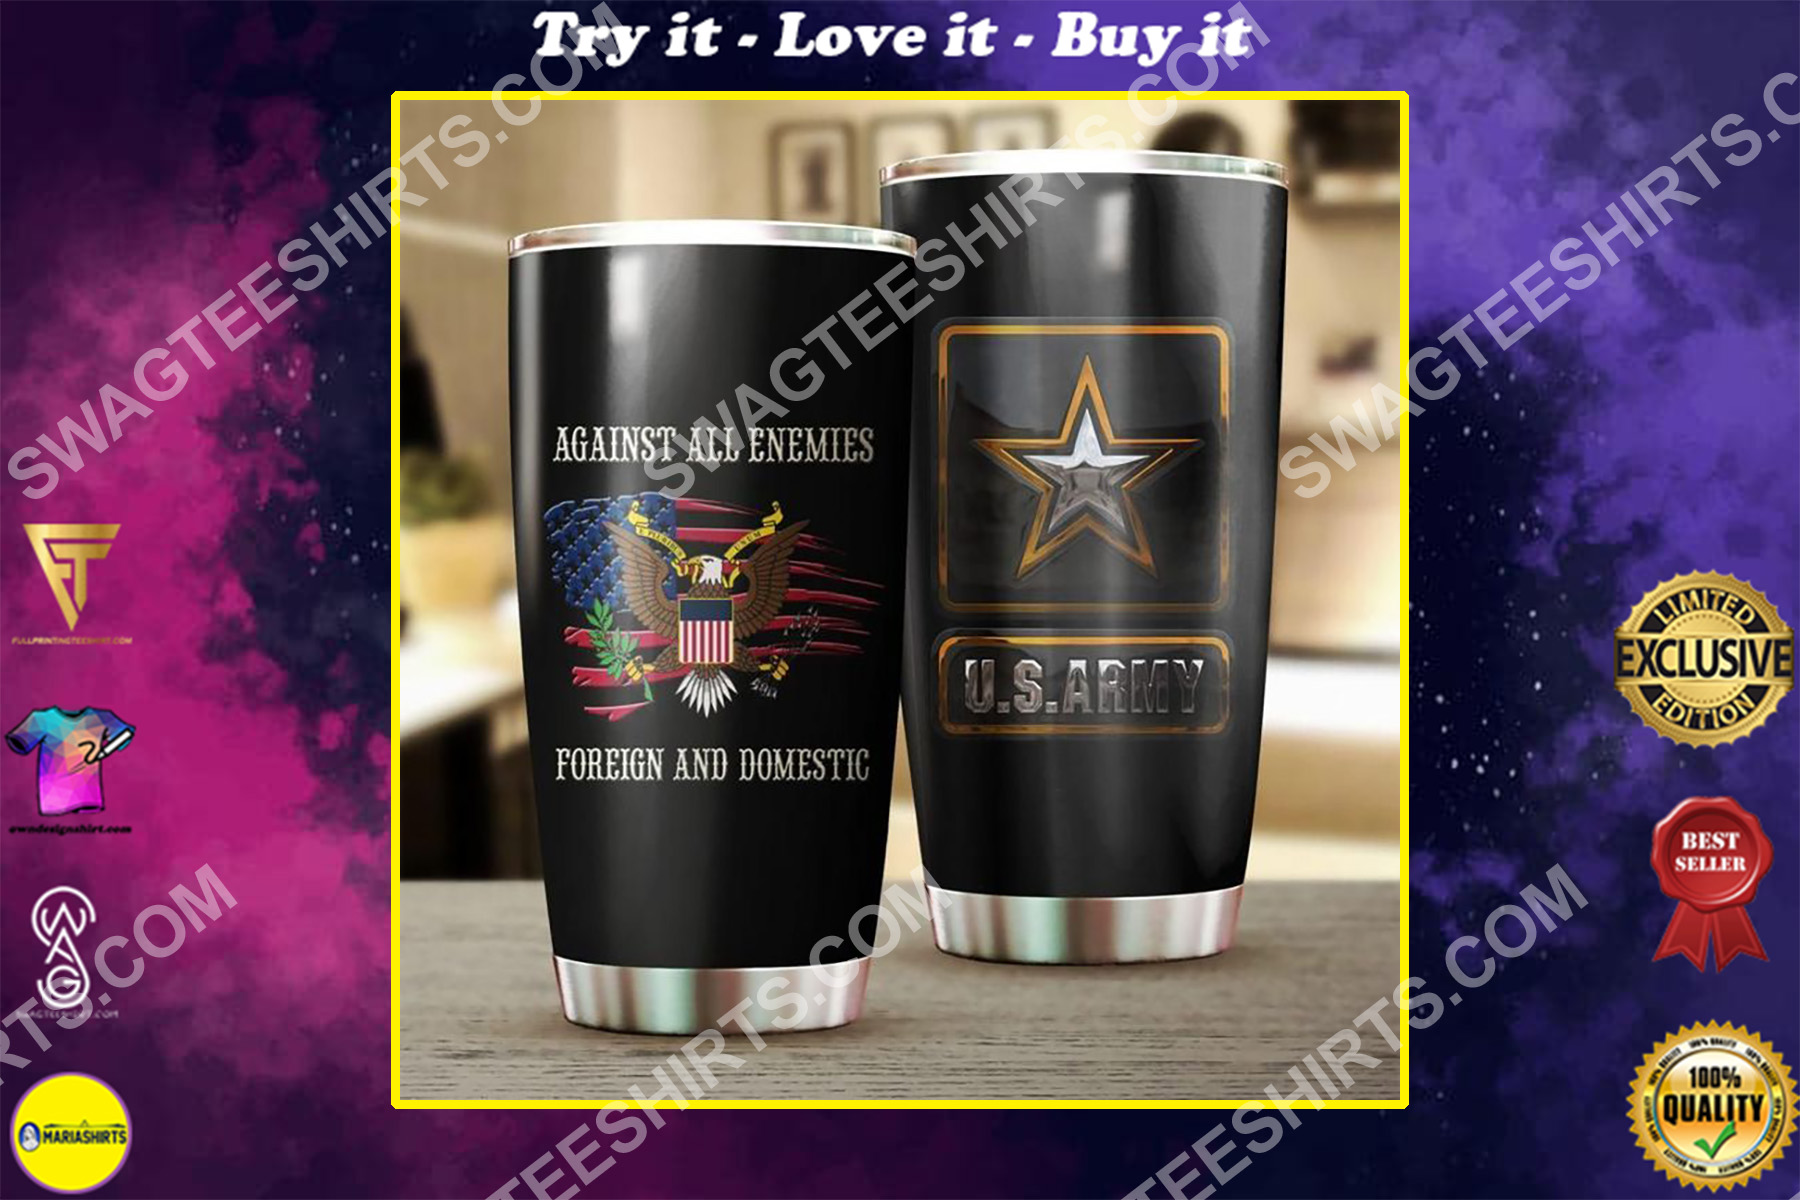 us army against all enemies foreign and domestic all over printed stainless steel tumbler